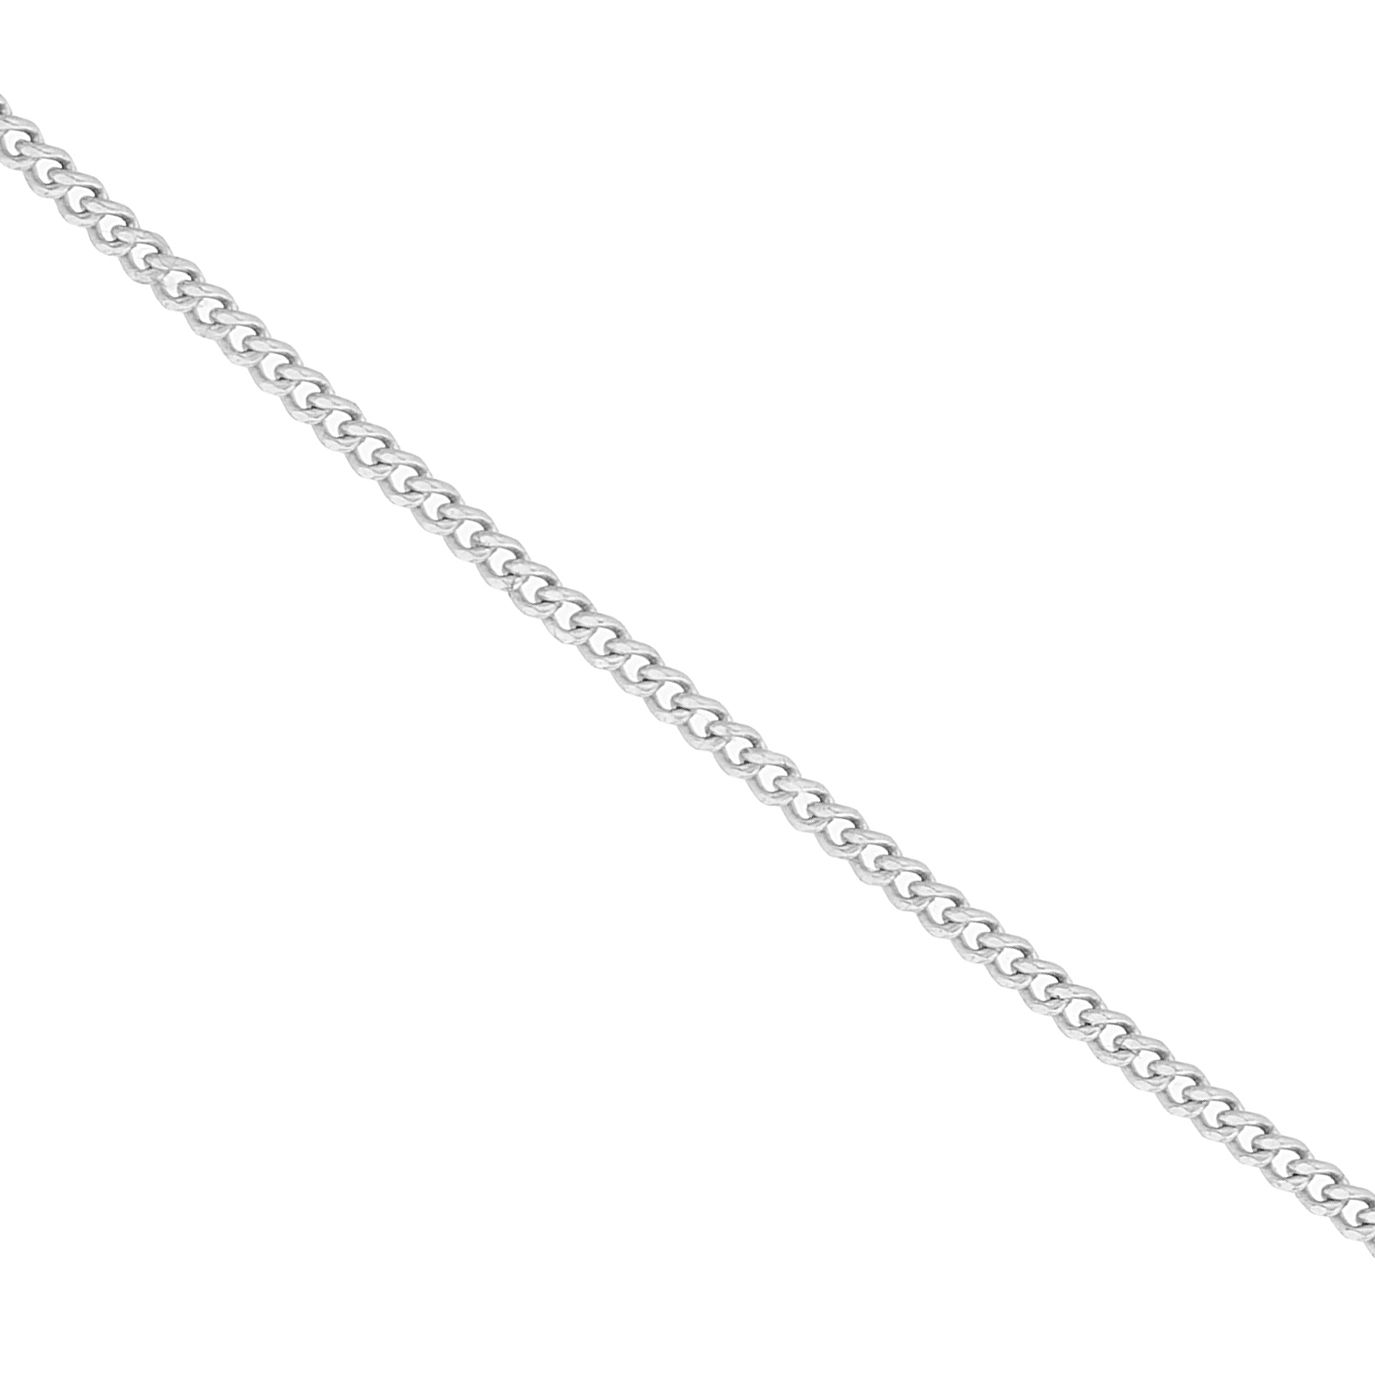 9ct White Gold 18 inches Curb Chain Necklace - Product number 1065572